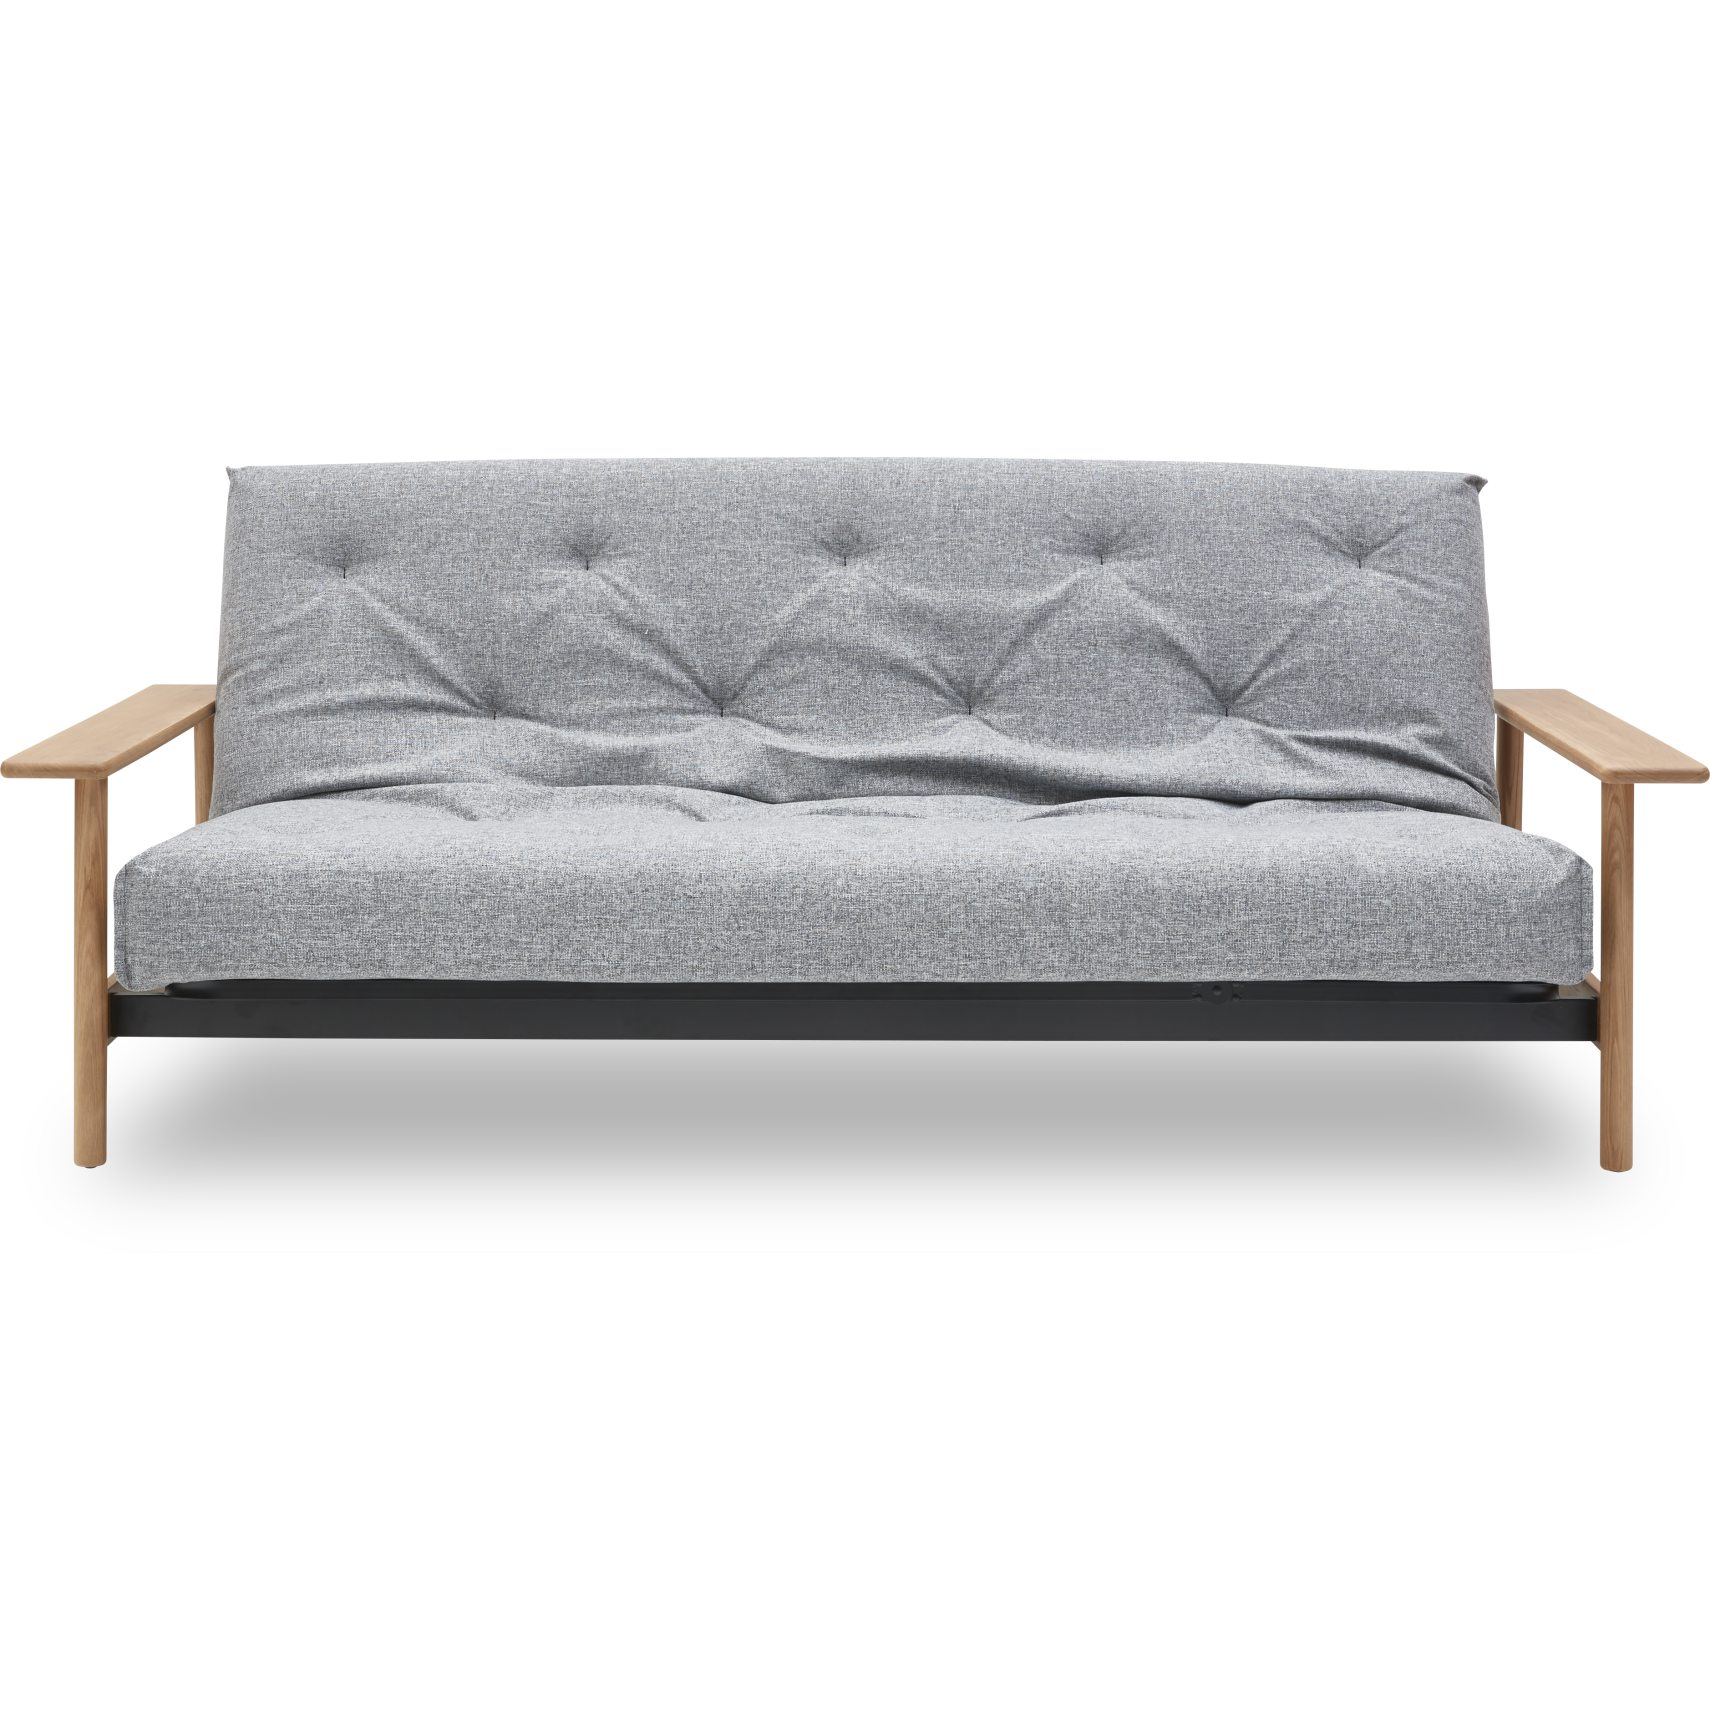 Innovation Living - Balder Sovesofa - Sovesofa